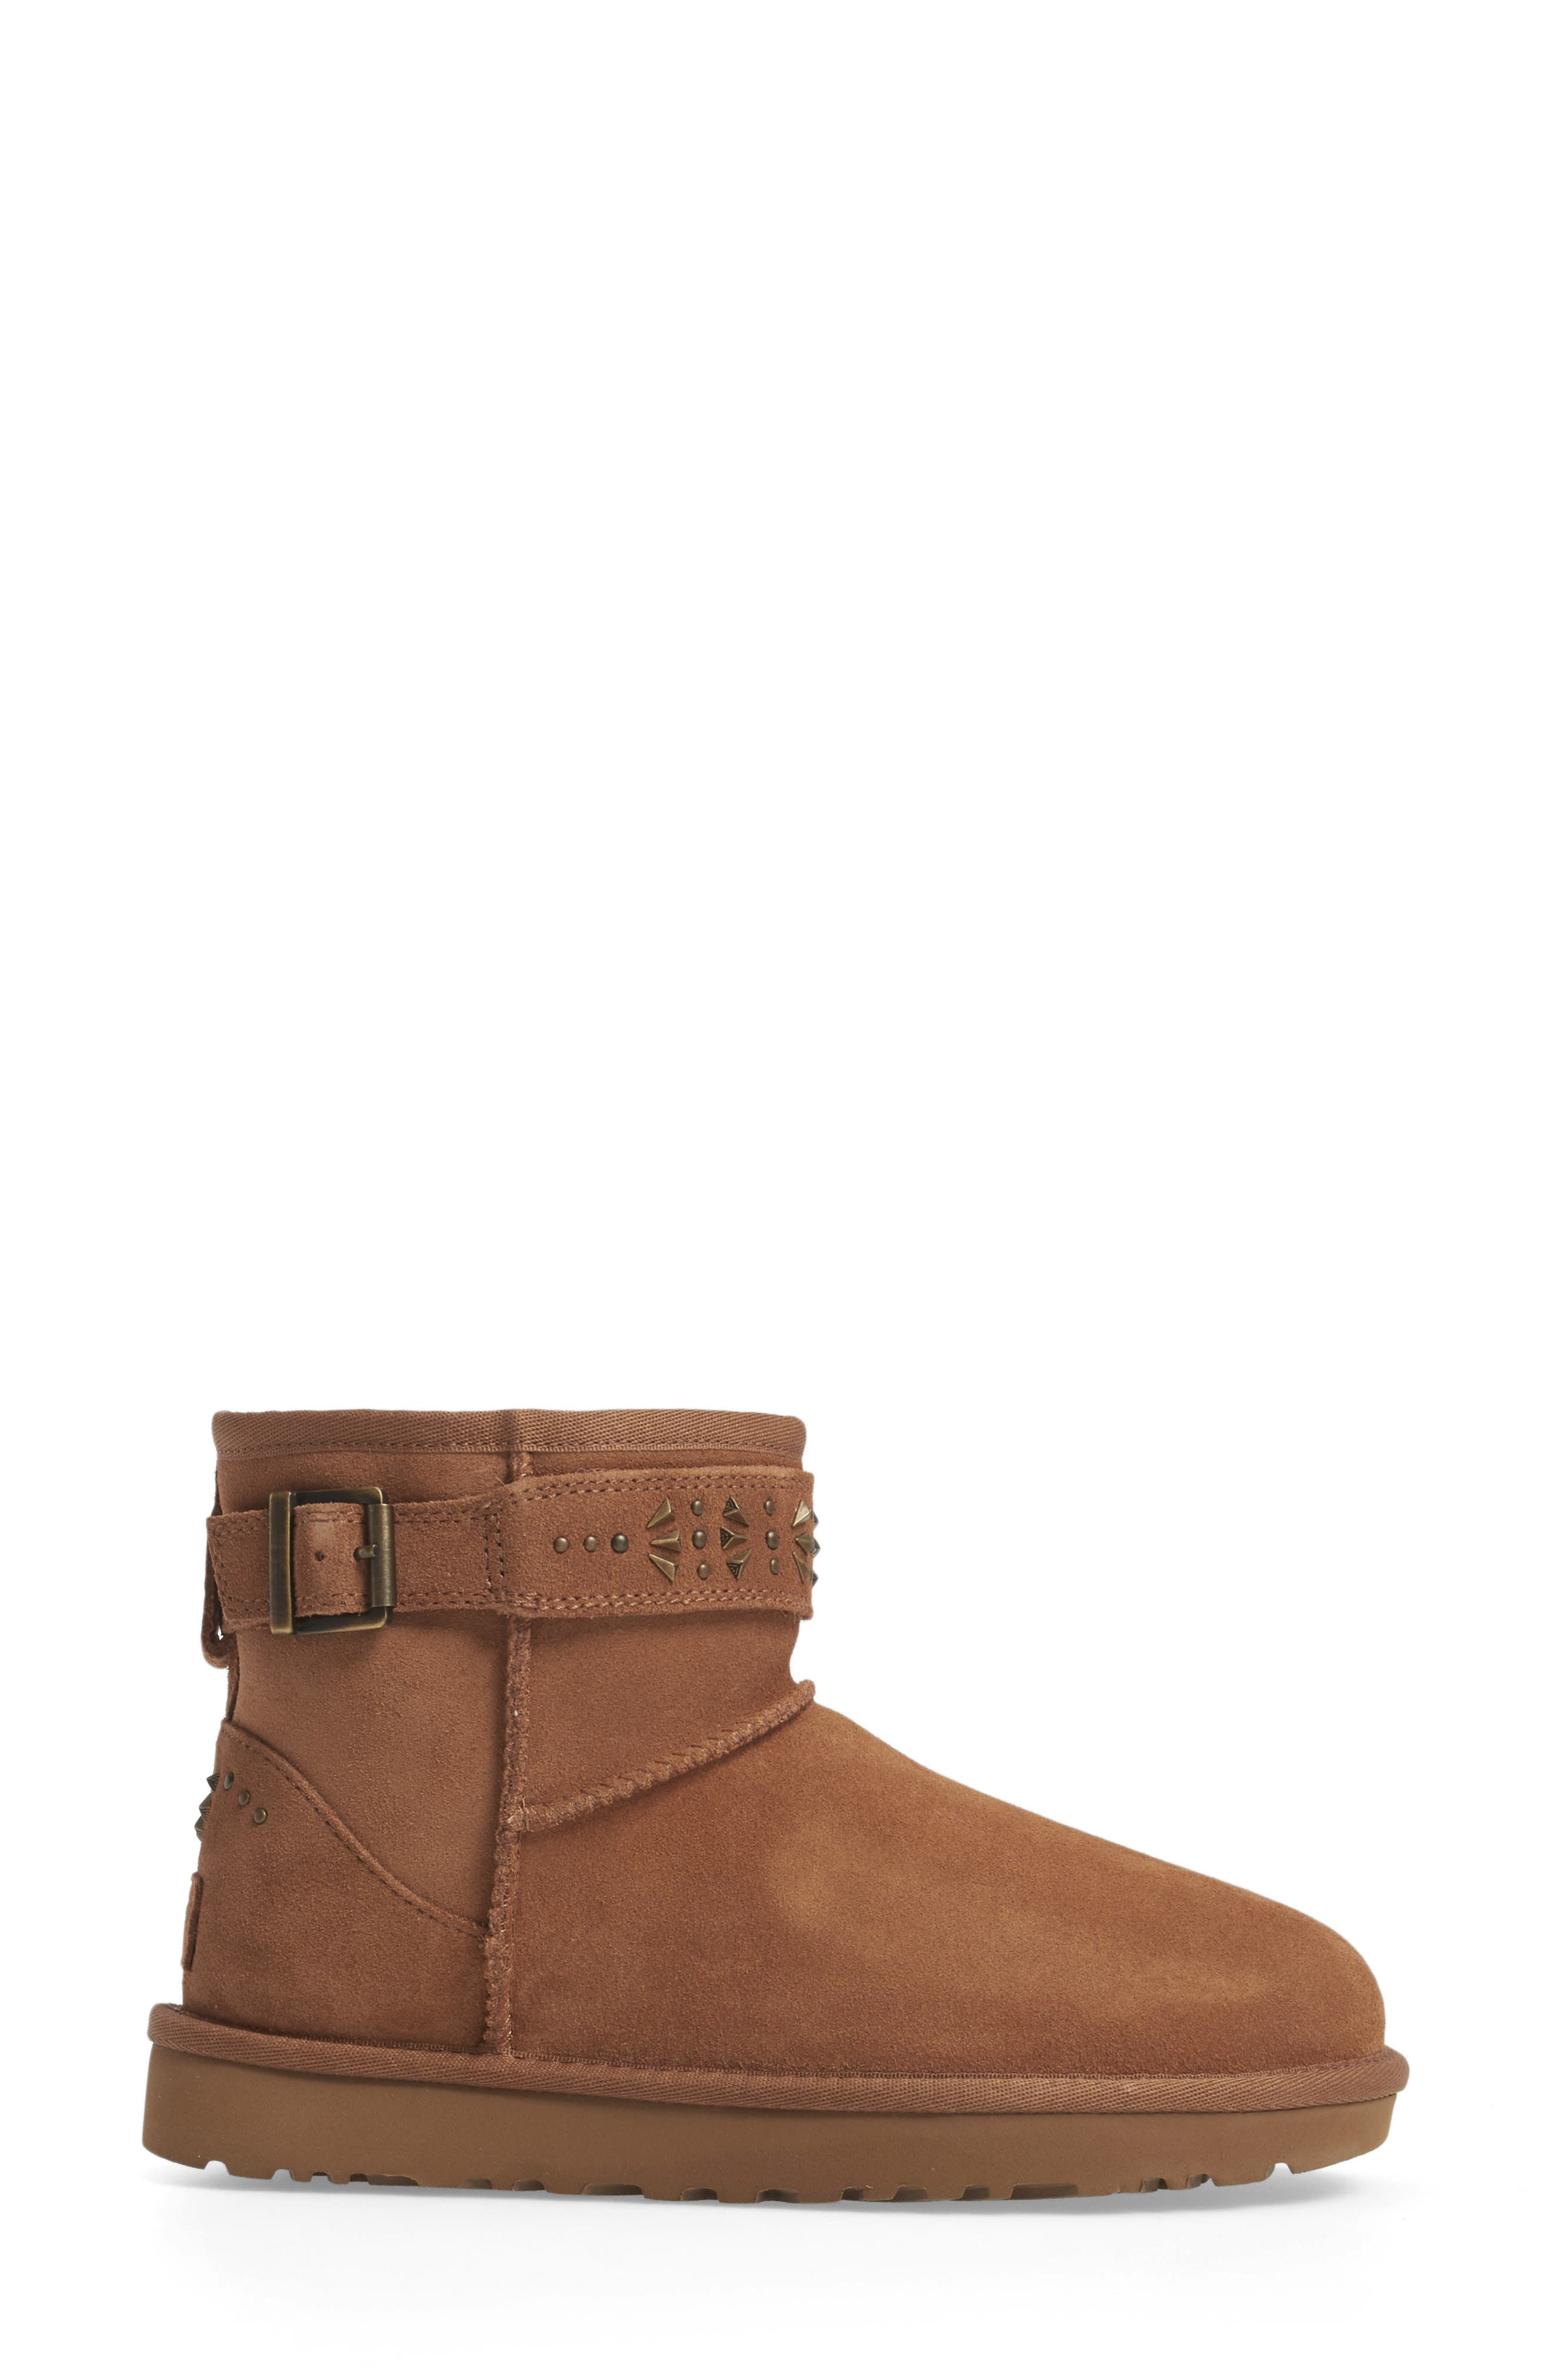 Jadine Boot,                             Alternate thumbnail 3, color,                             Chestnut Suede